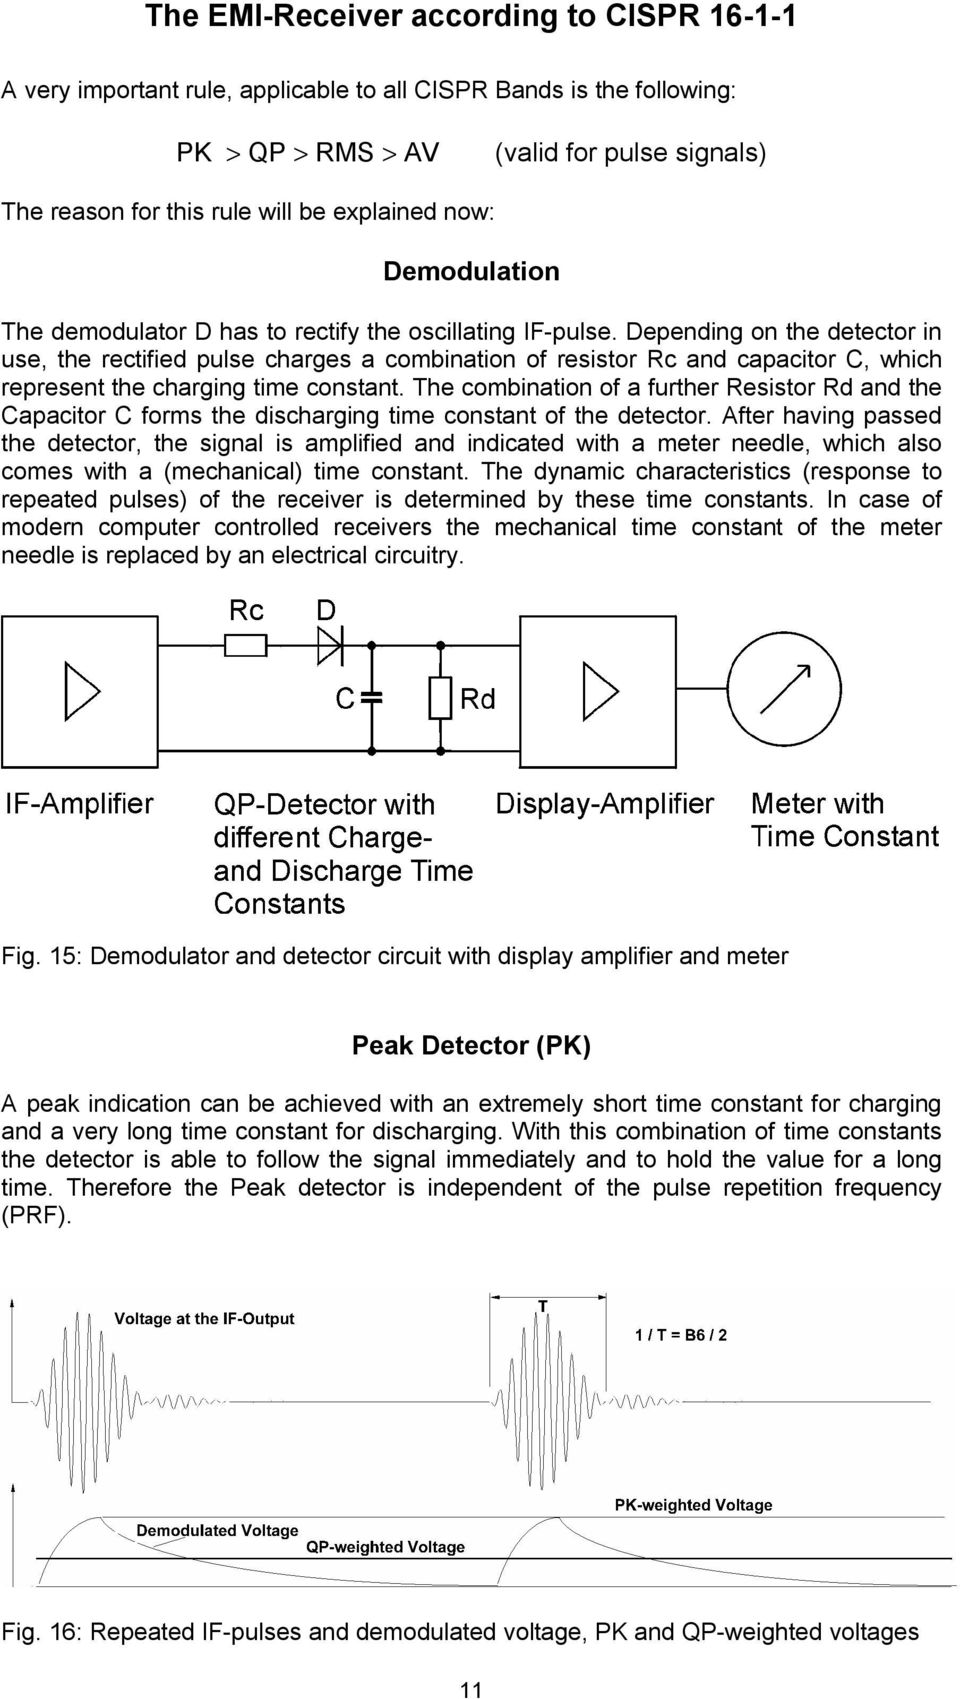 The combination of a further Resistor Rd and the Capacitor C forms the discharging time constant of the detector.